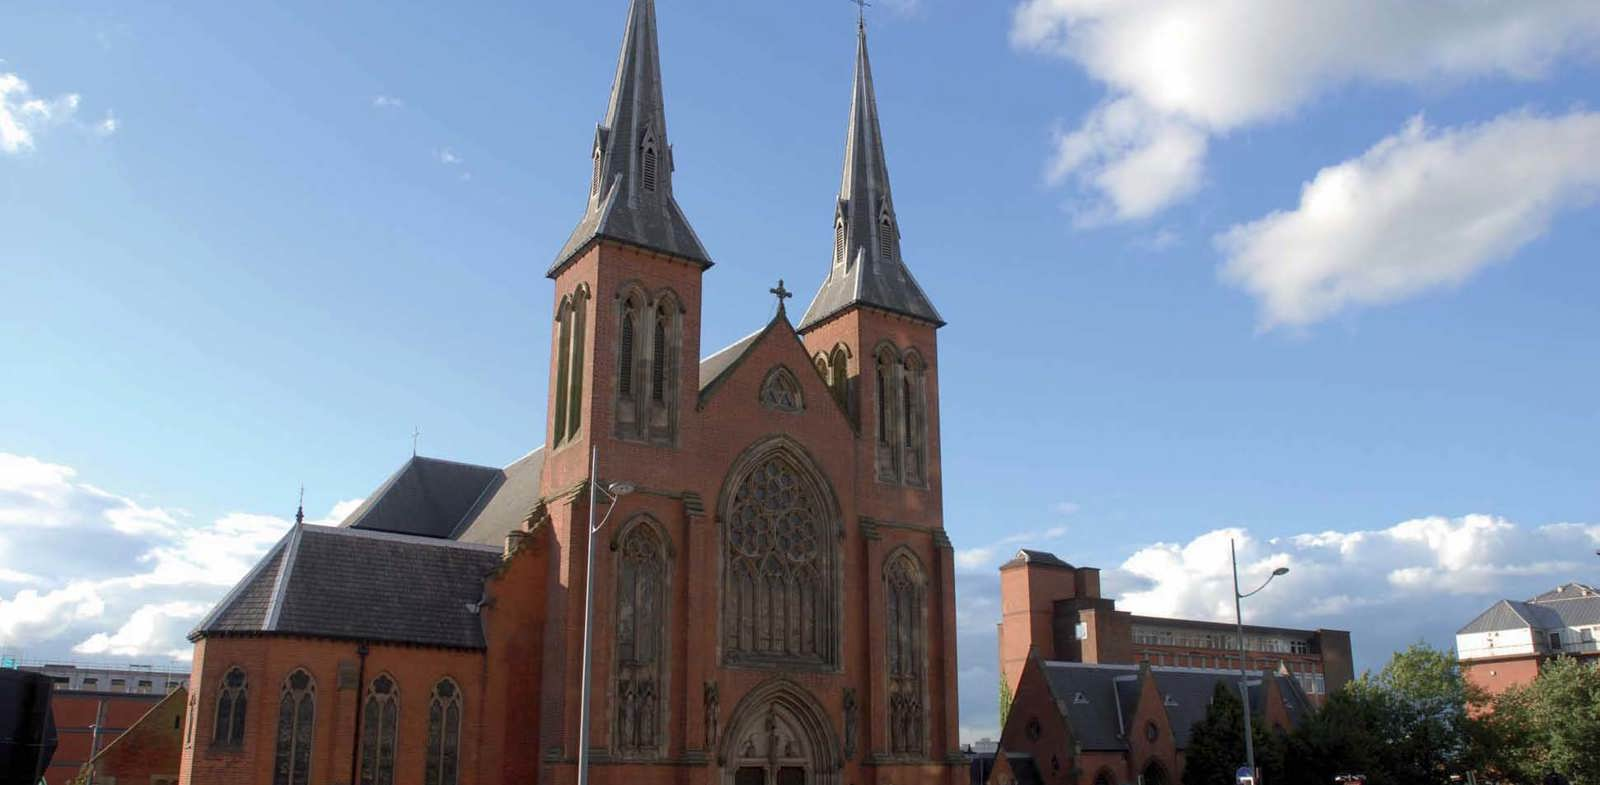 Soak up the splendour of St Chad's Cathedral